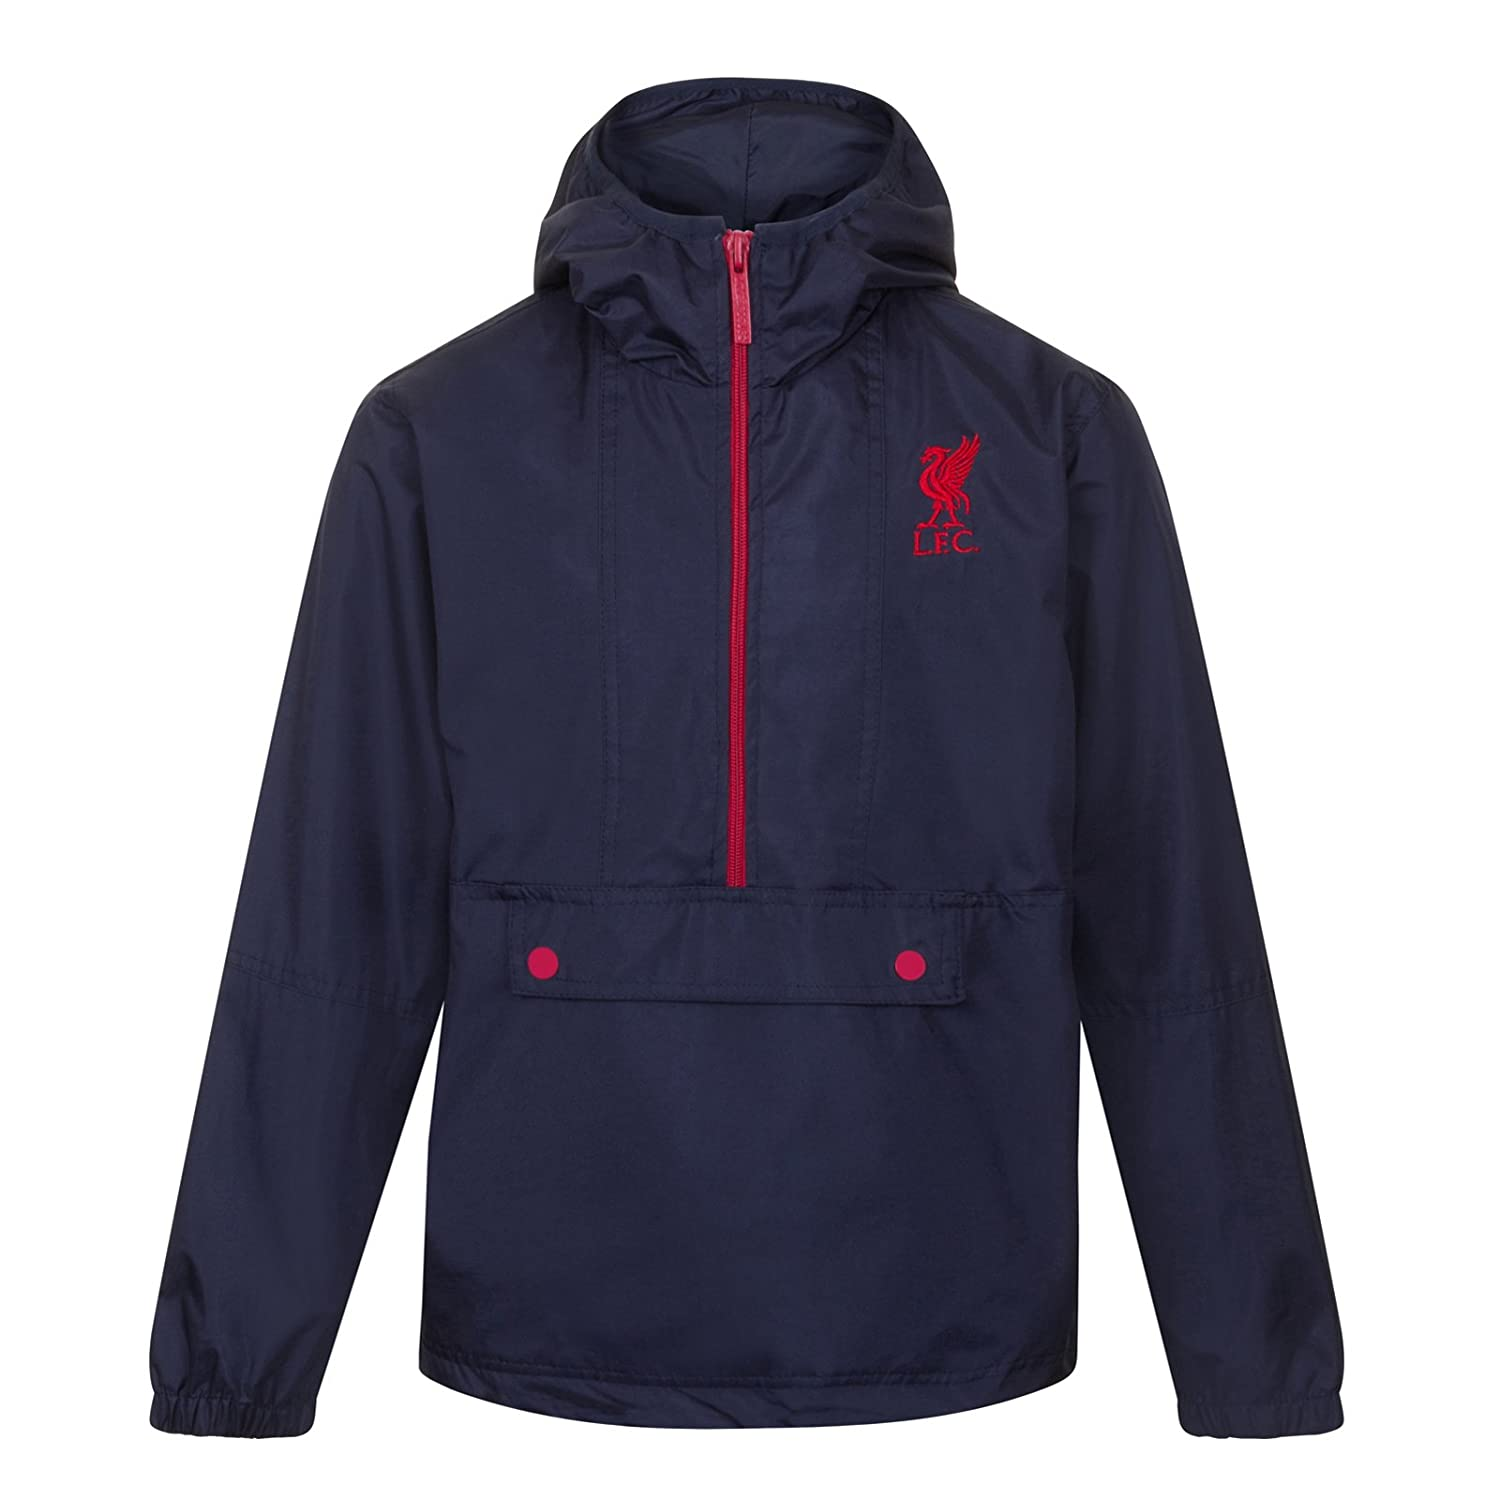 Liverpool Football Club Official Soccer Gift Boys Shower Jacket Windbreaker